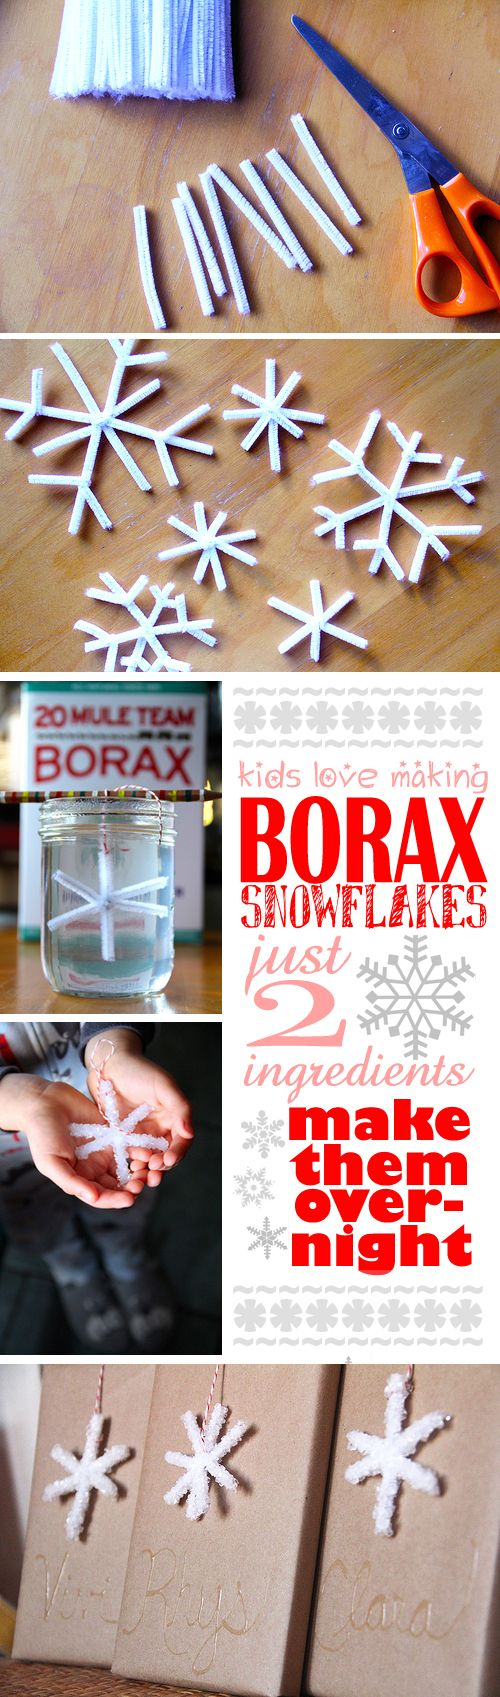 asics trabuco gtx 14 Easy Borax snowflakes  Perfect advent calendar craft for kids  Awesome as ornaments or gift tags   winter  crafts  diy